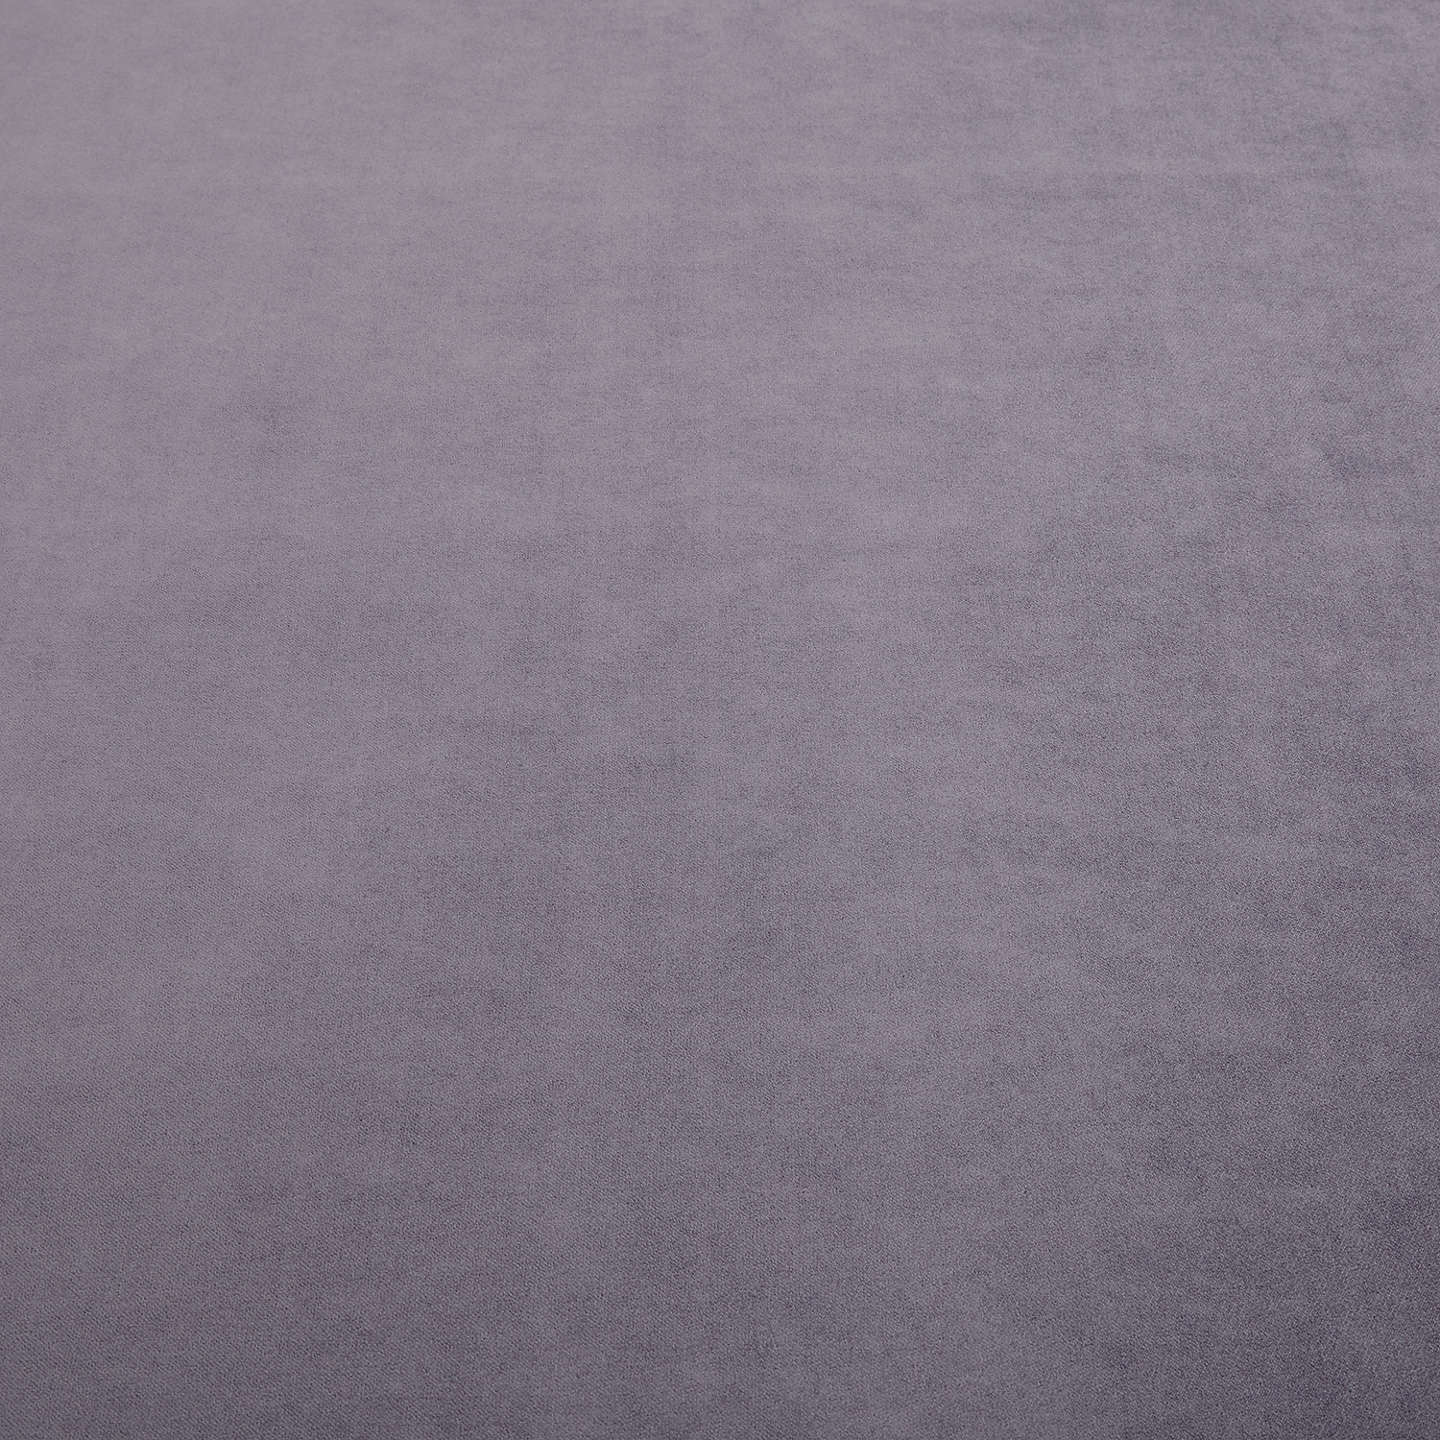 BuyAquaclean Harriet Steel Velvet Fabric, Price Band C Online at johnlewis.com